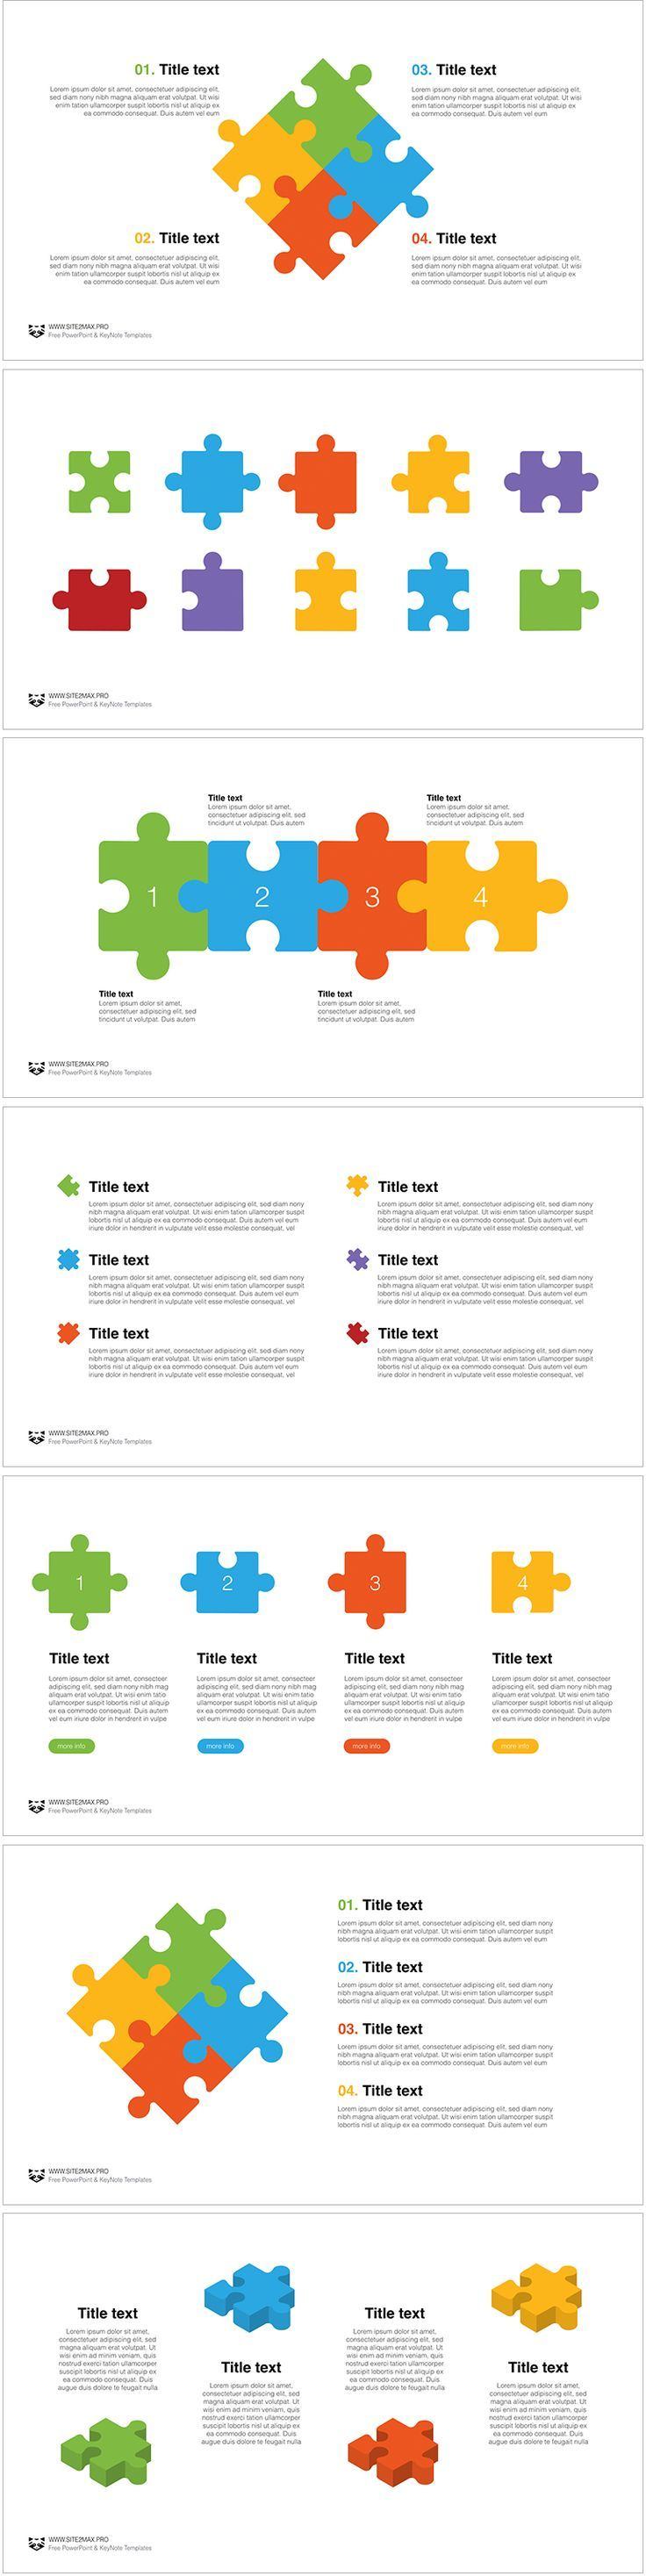 Download Http Site2max Pro Puzzle Free Key Template Puzzle Free Key Template Puzzle Free Key Keynote Free Free Free Keynote Template Keynote Clip Art Puzzle piece powerpoint template free